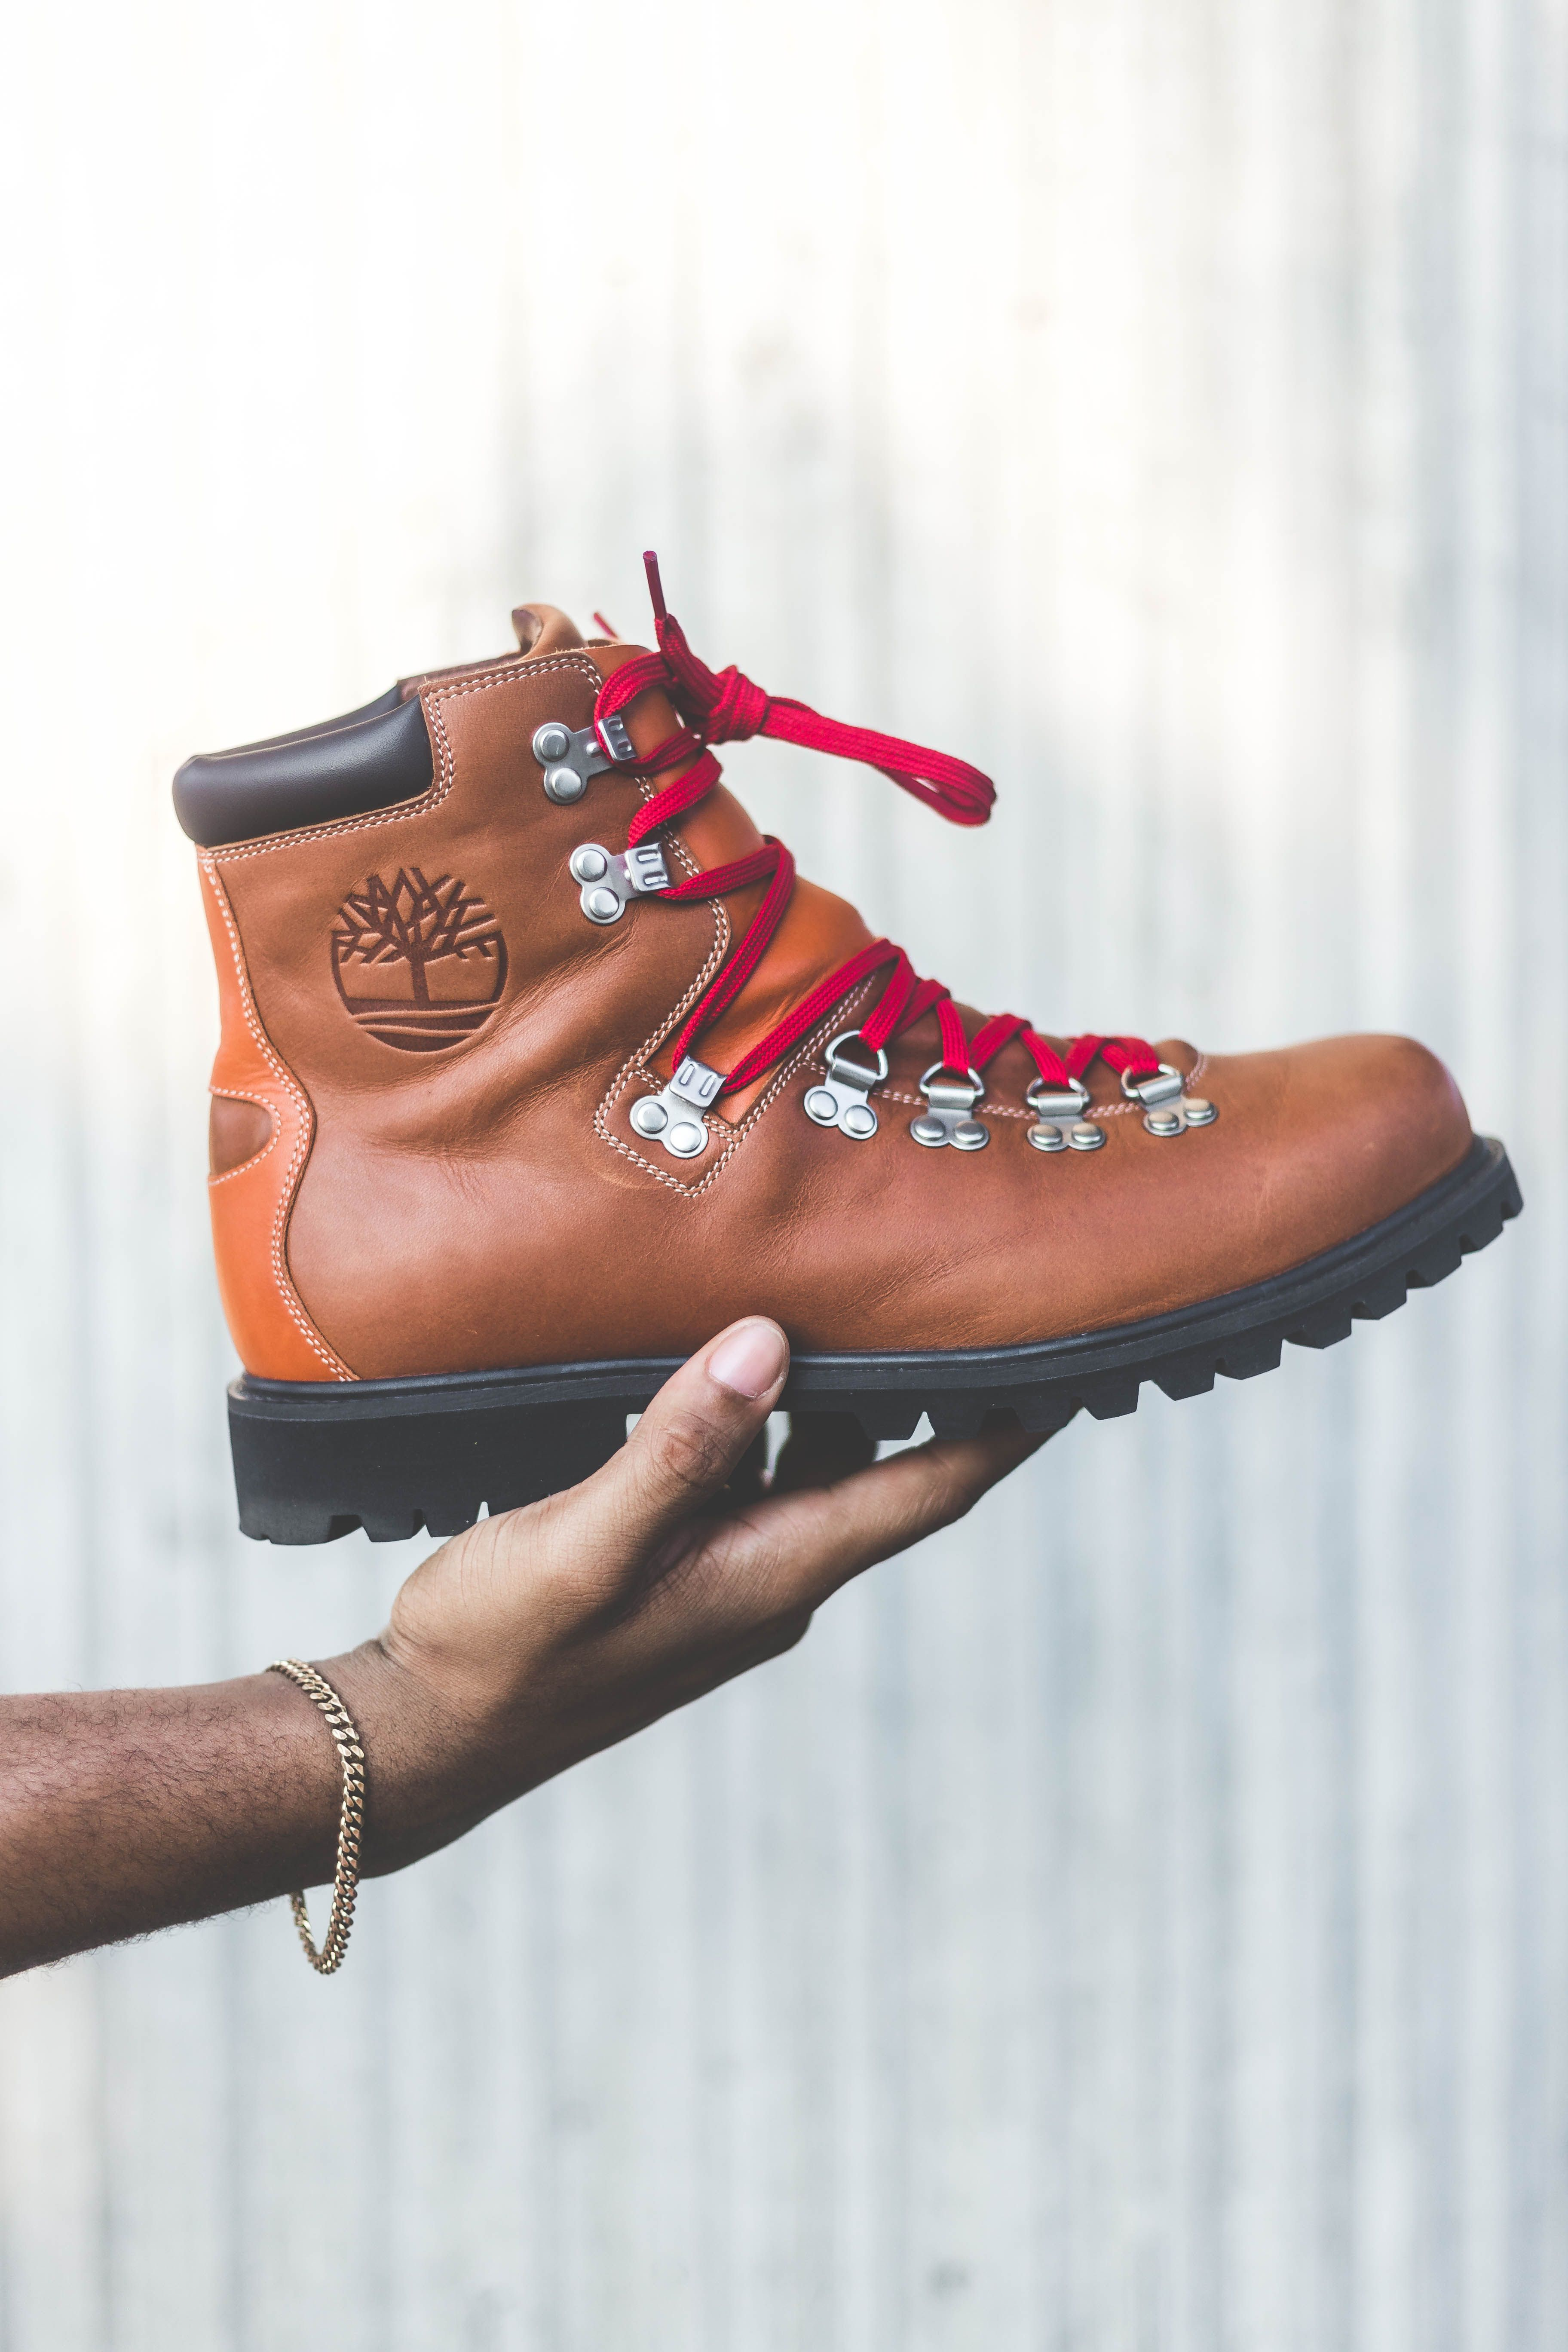 Men's 1978 Waterproof Hiking Boots | Timberland hiking boots